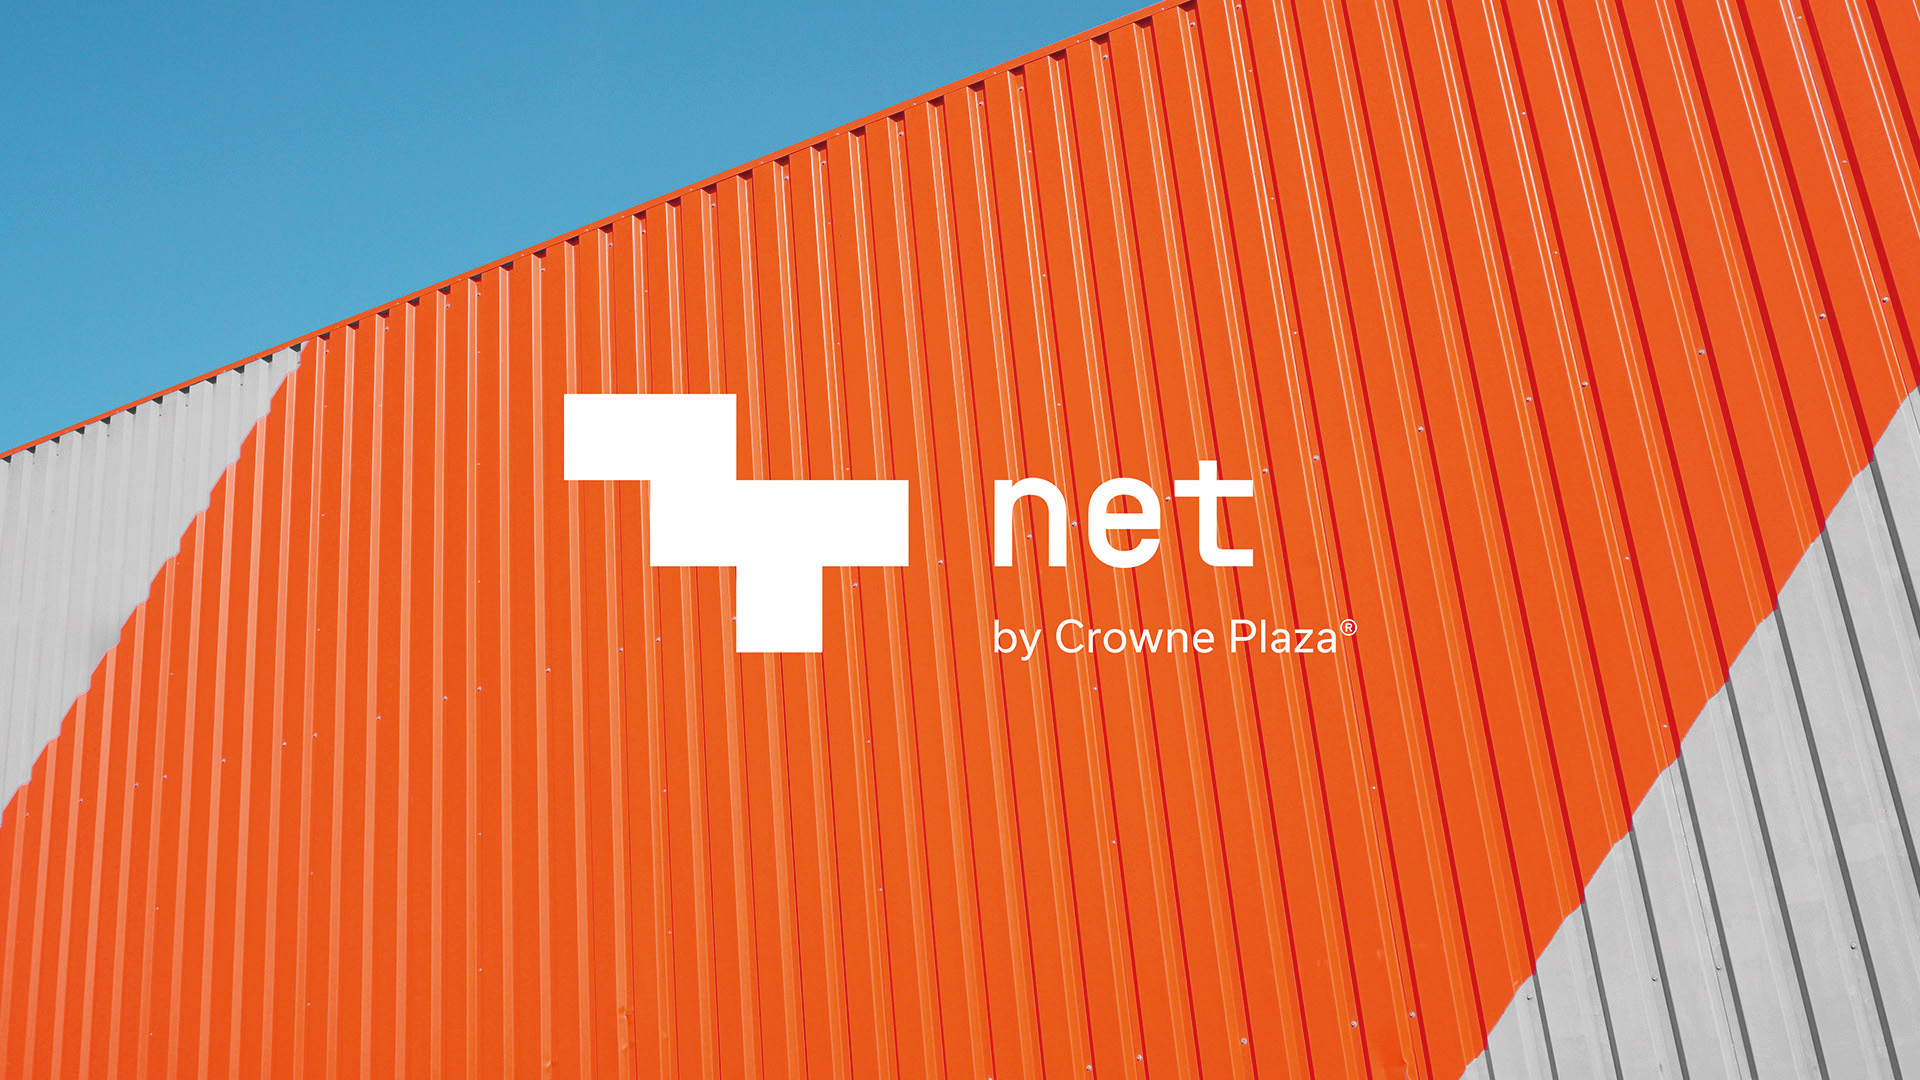 Net by Crowne Plaza